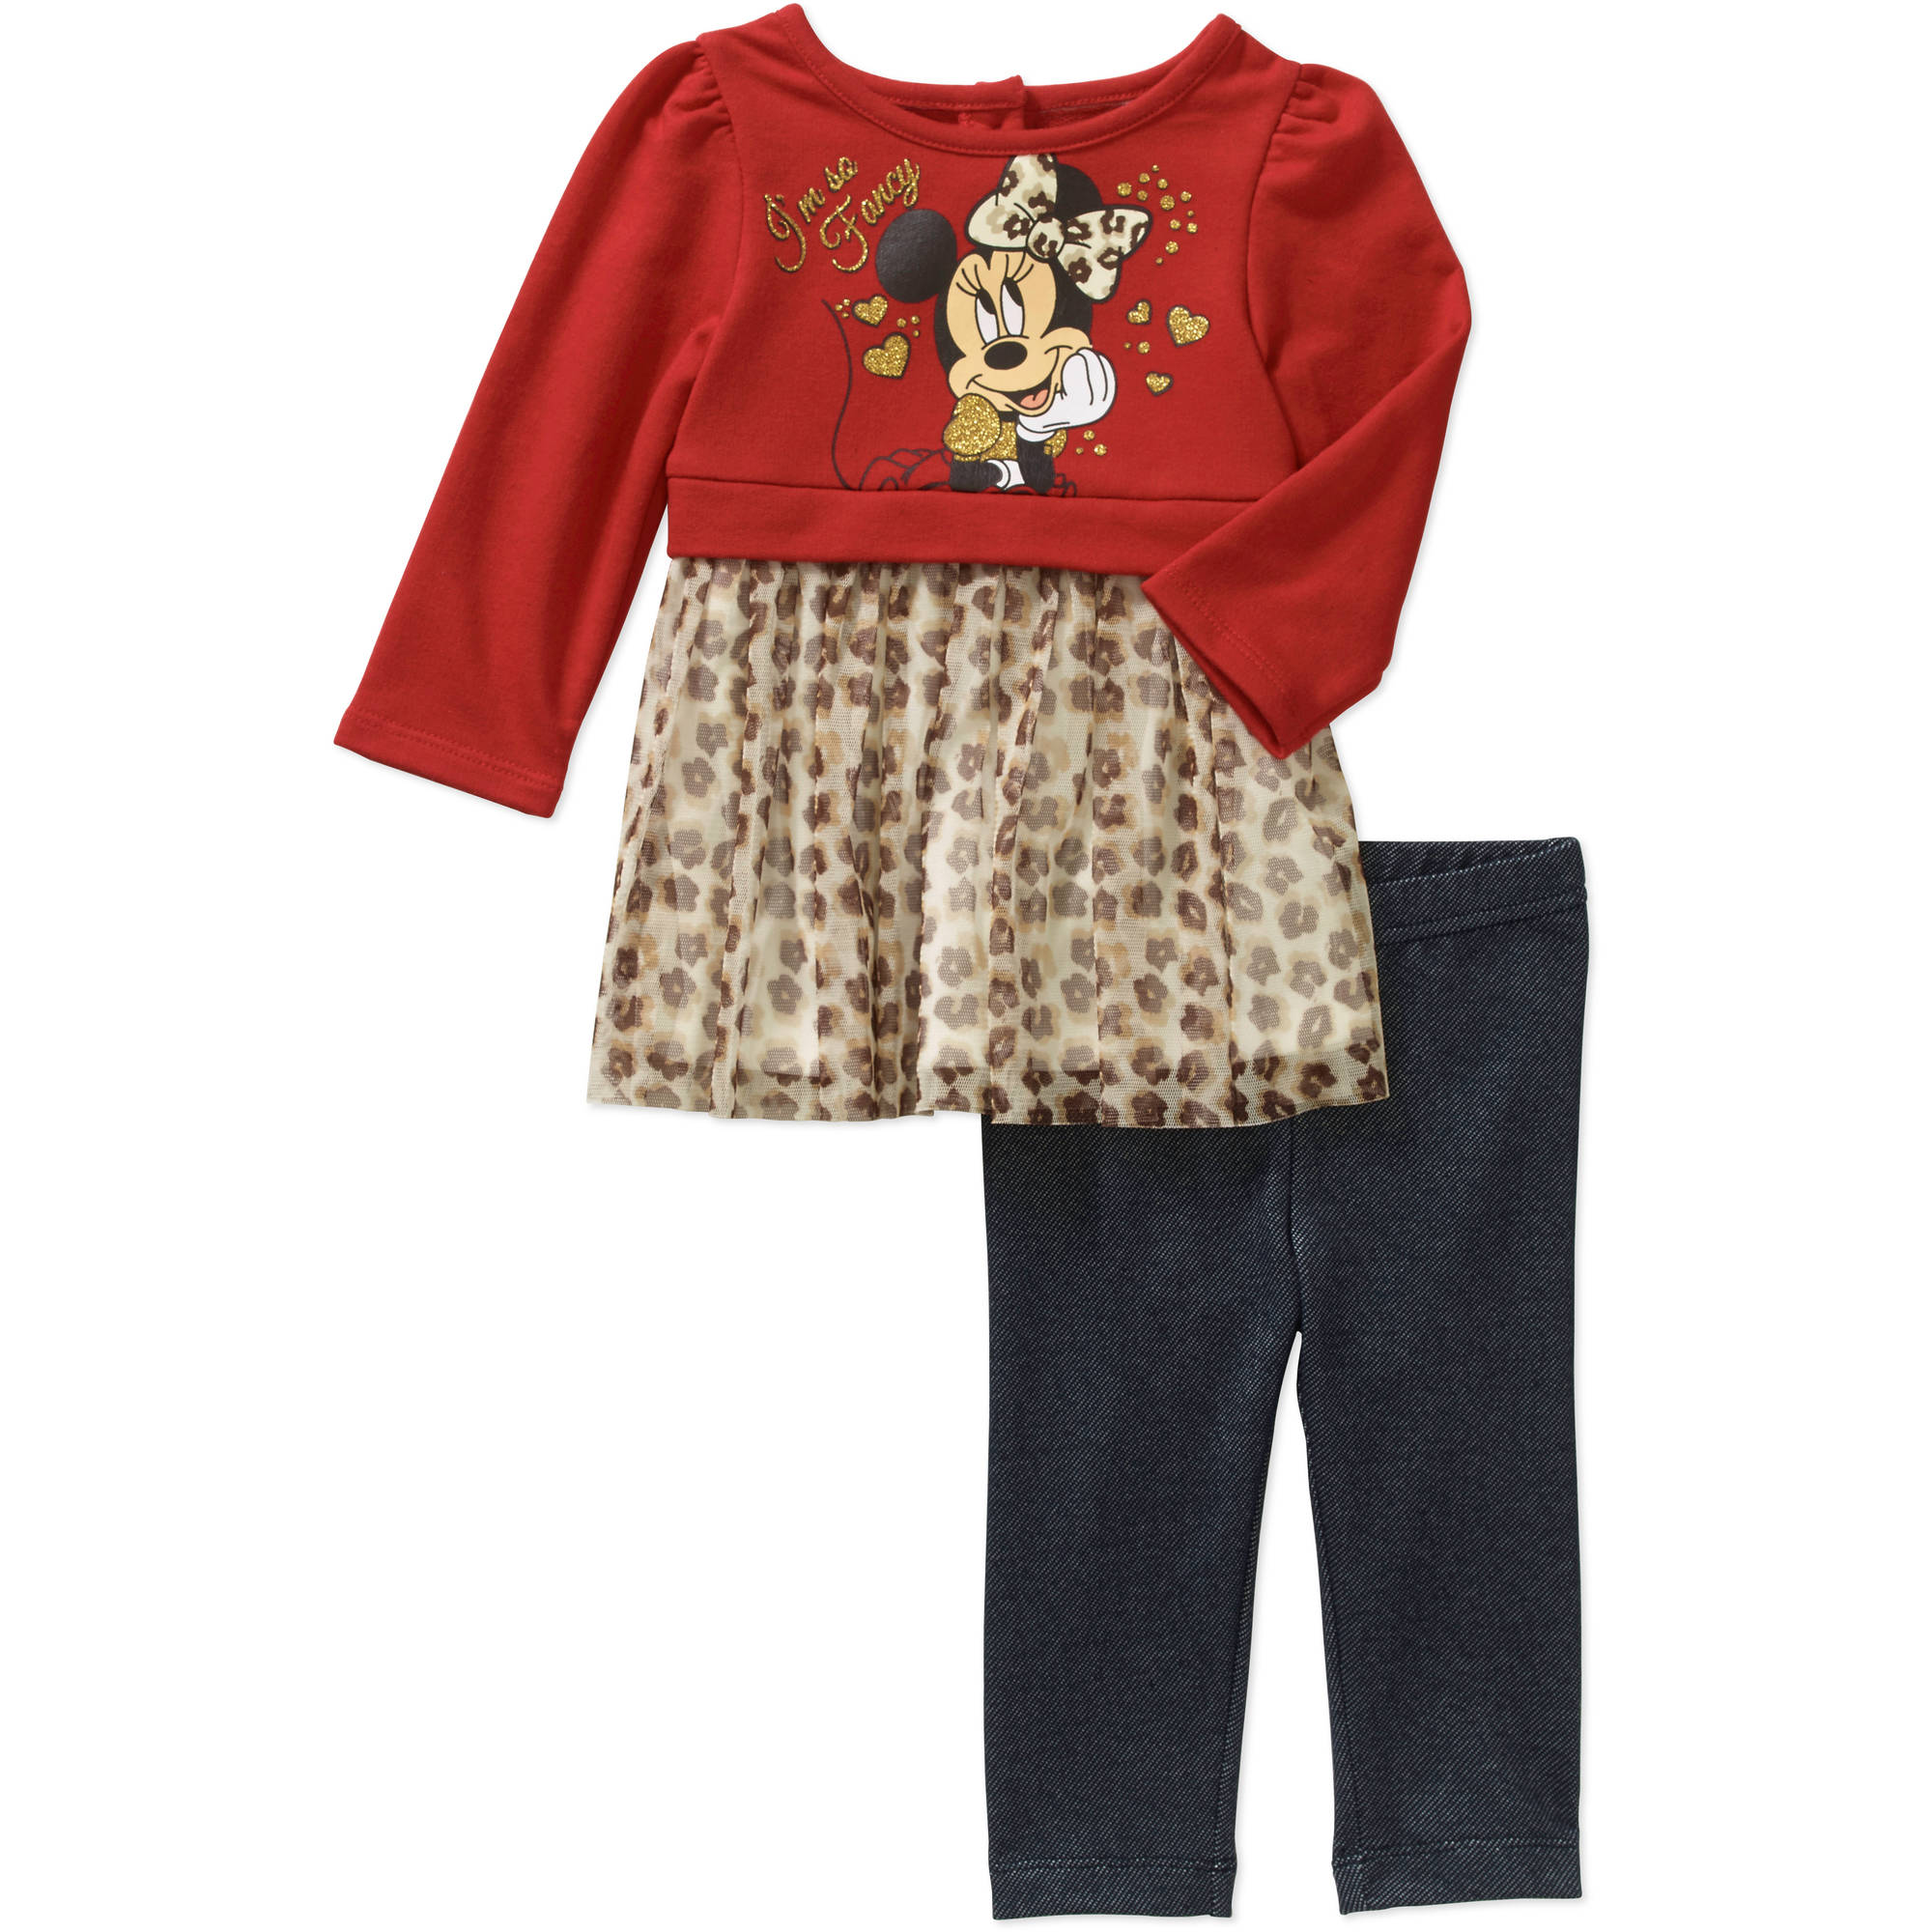 Minnie Mouse Newborn Baby Girls' Skirted Tunic and Leggings Outfit Set